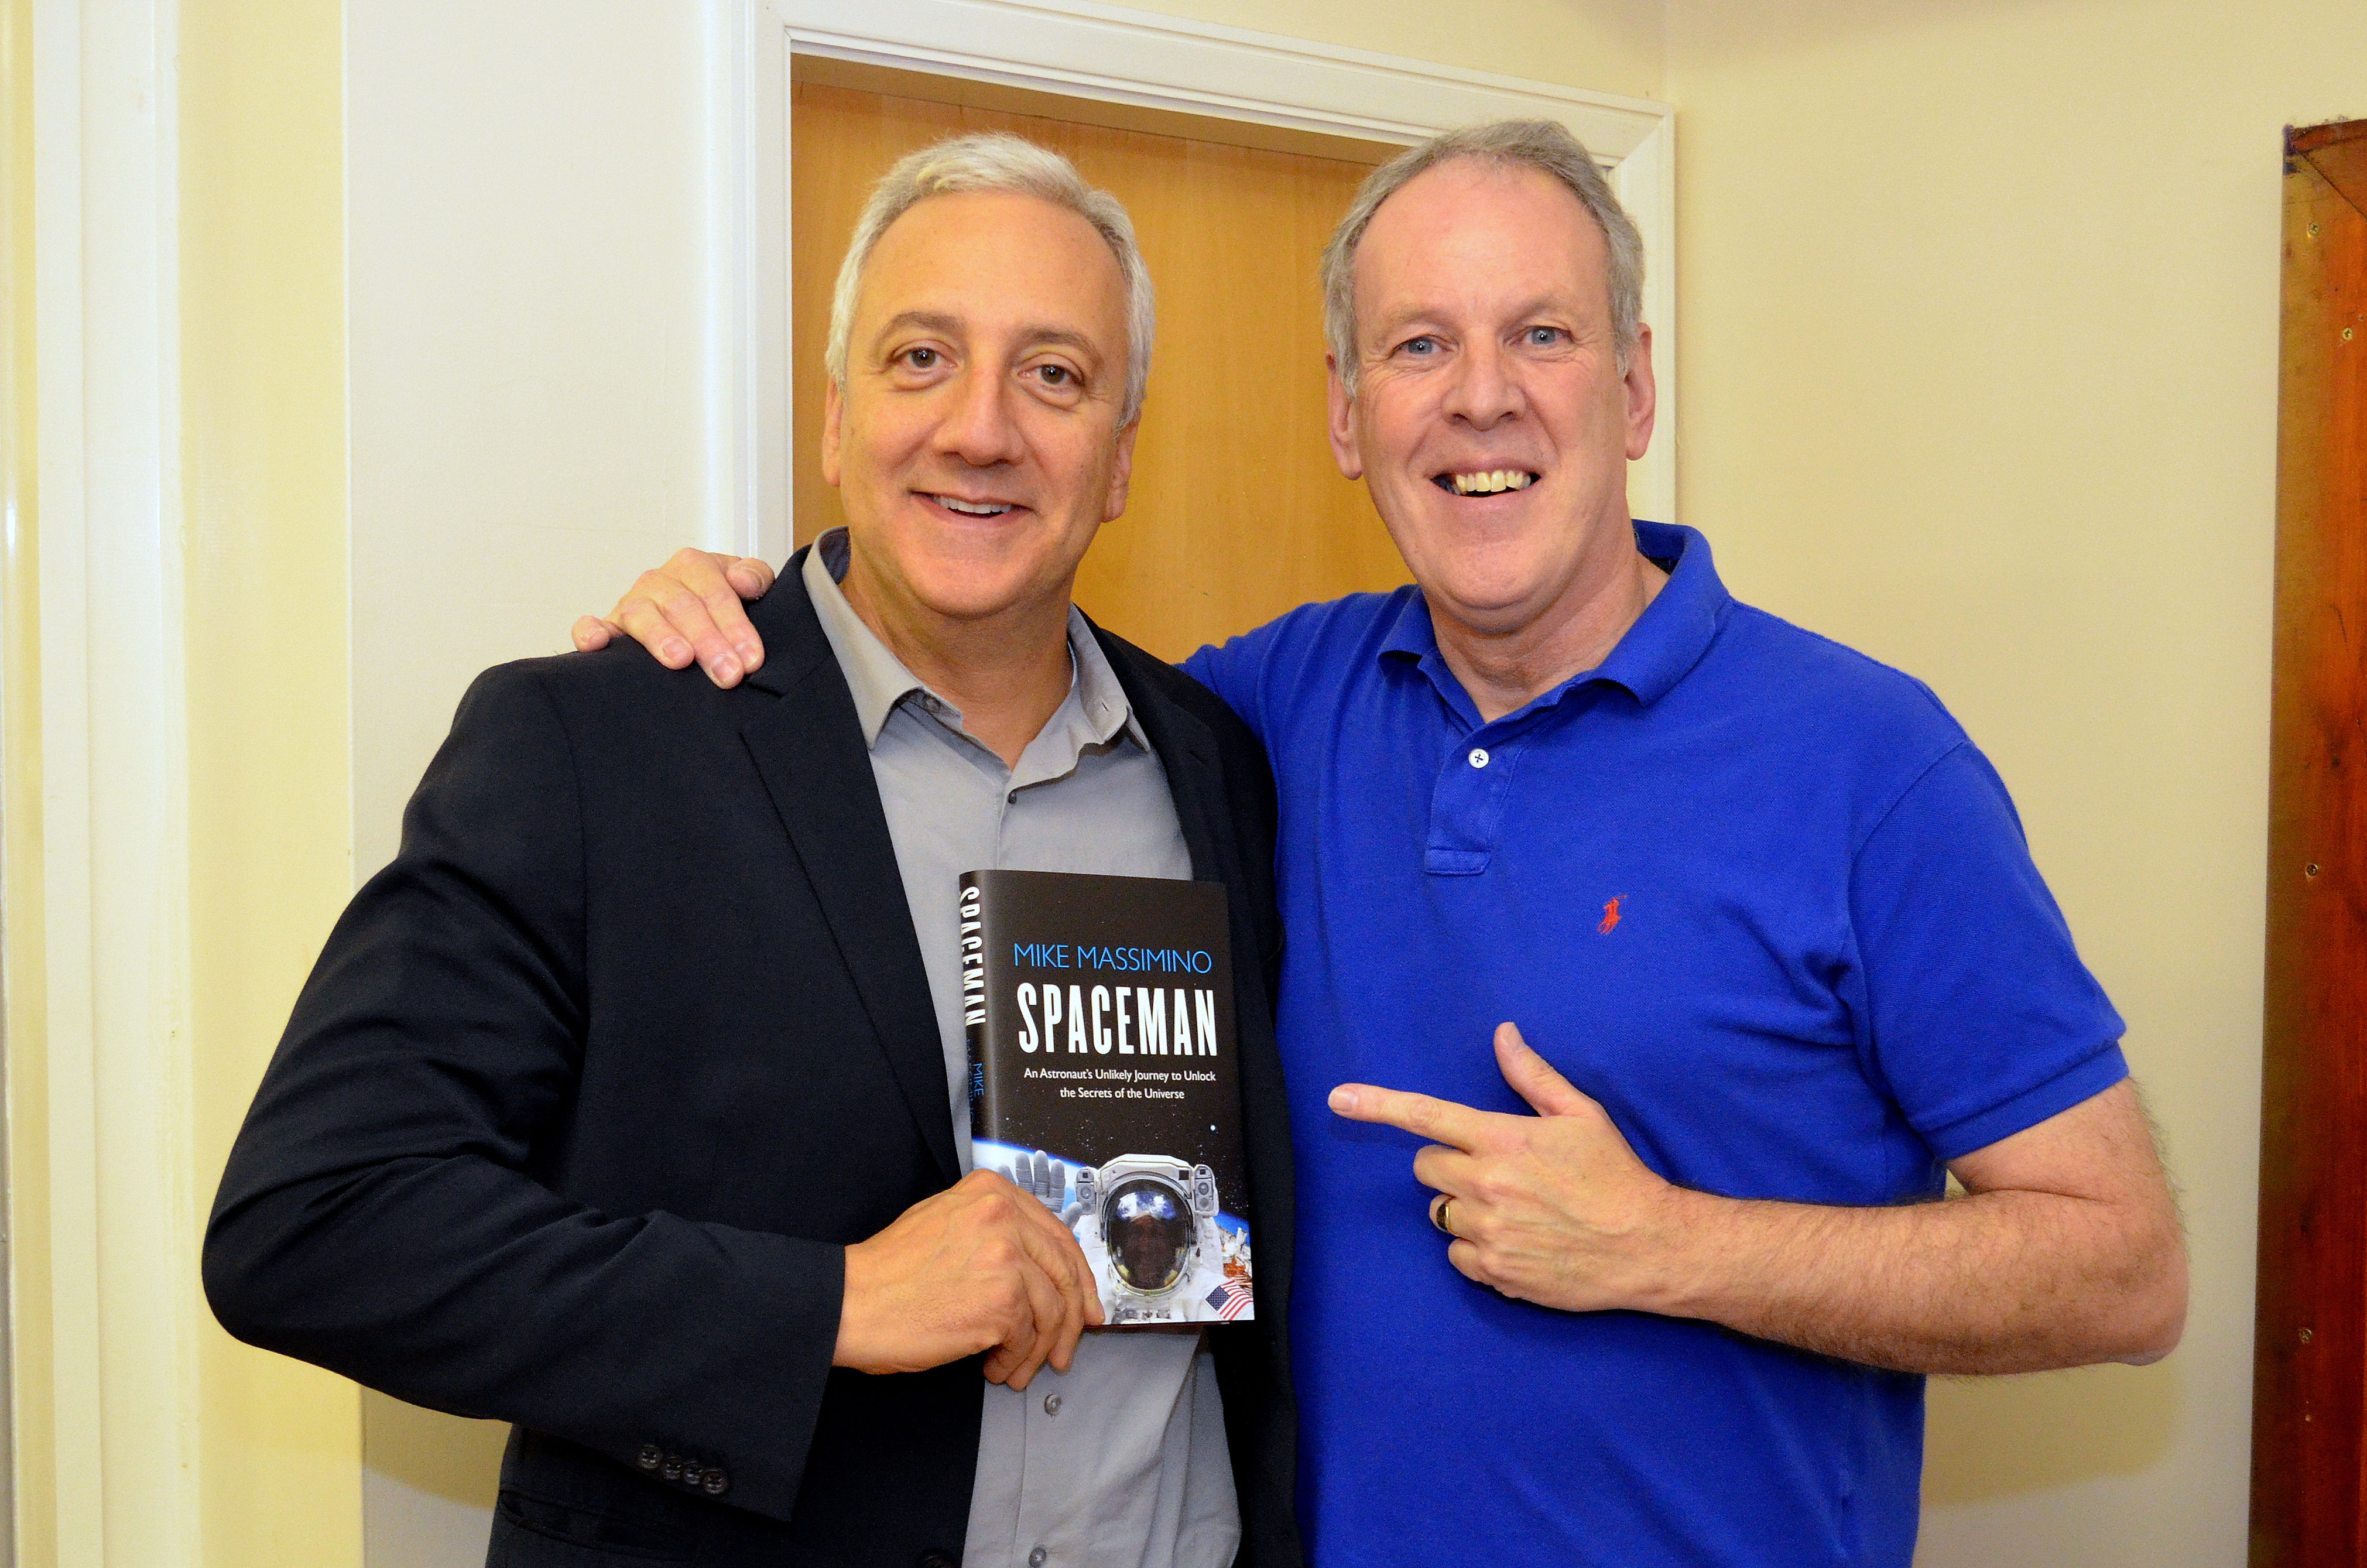 Spaceman mike massimino